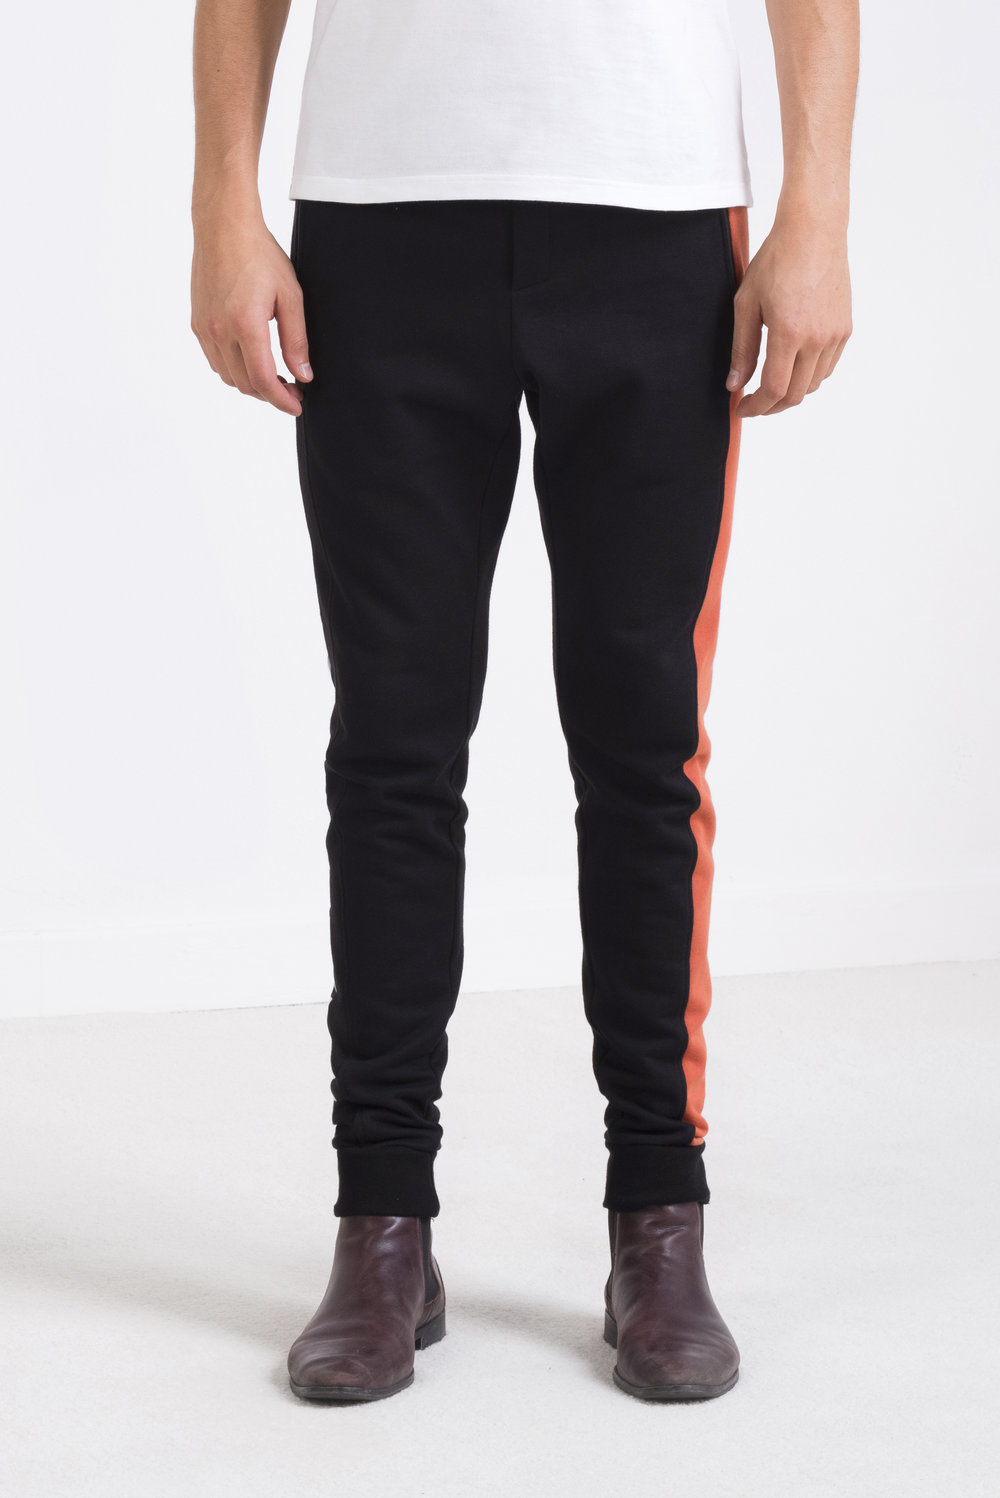 oneculture Alphabet sweatpants black 2.jpg